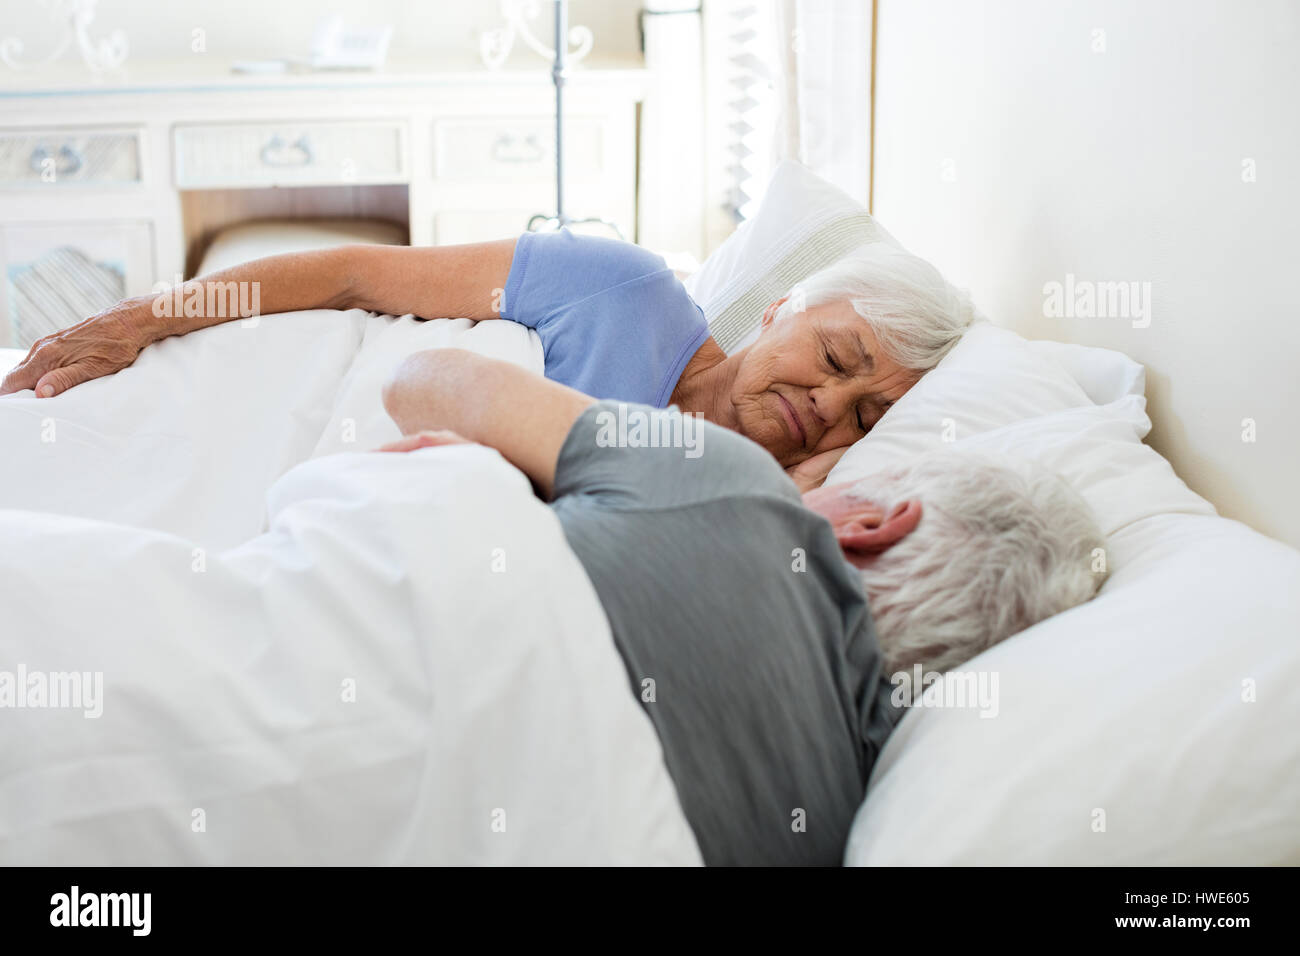 Senior couple sleeping in the bedroom at home - Stock Image